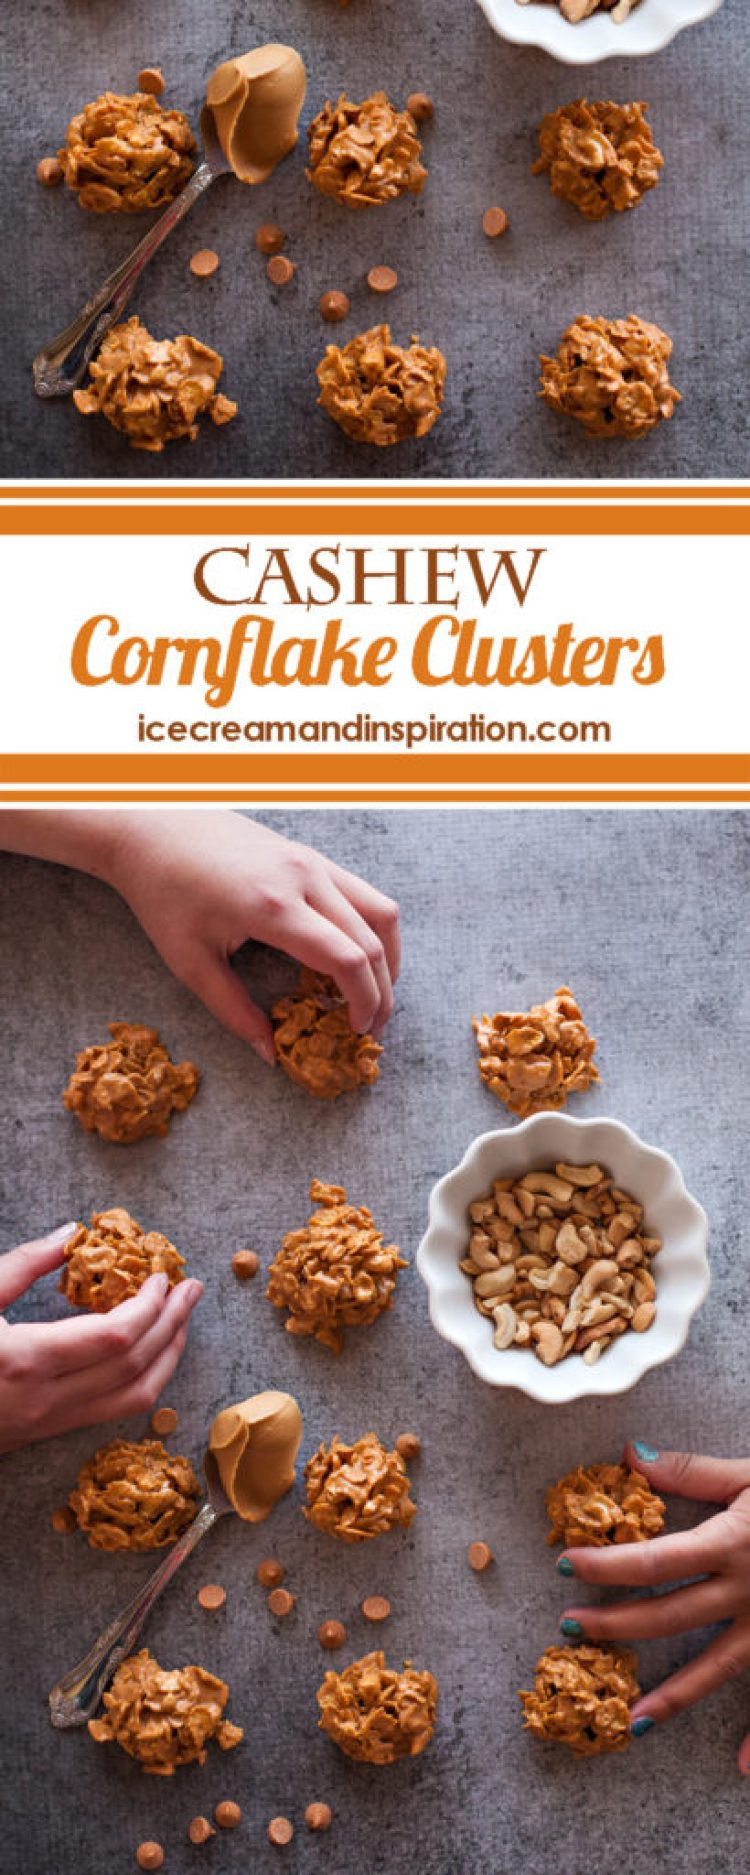 This no-bake cookie recipe for Cashew Cornflake Clusters will be your new favorite! With just butterscotch chips, cashews, peanut butter, and cornflakes, you'll have irresistible cookies in no time!